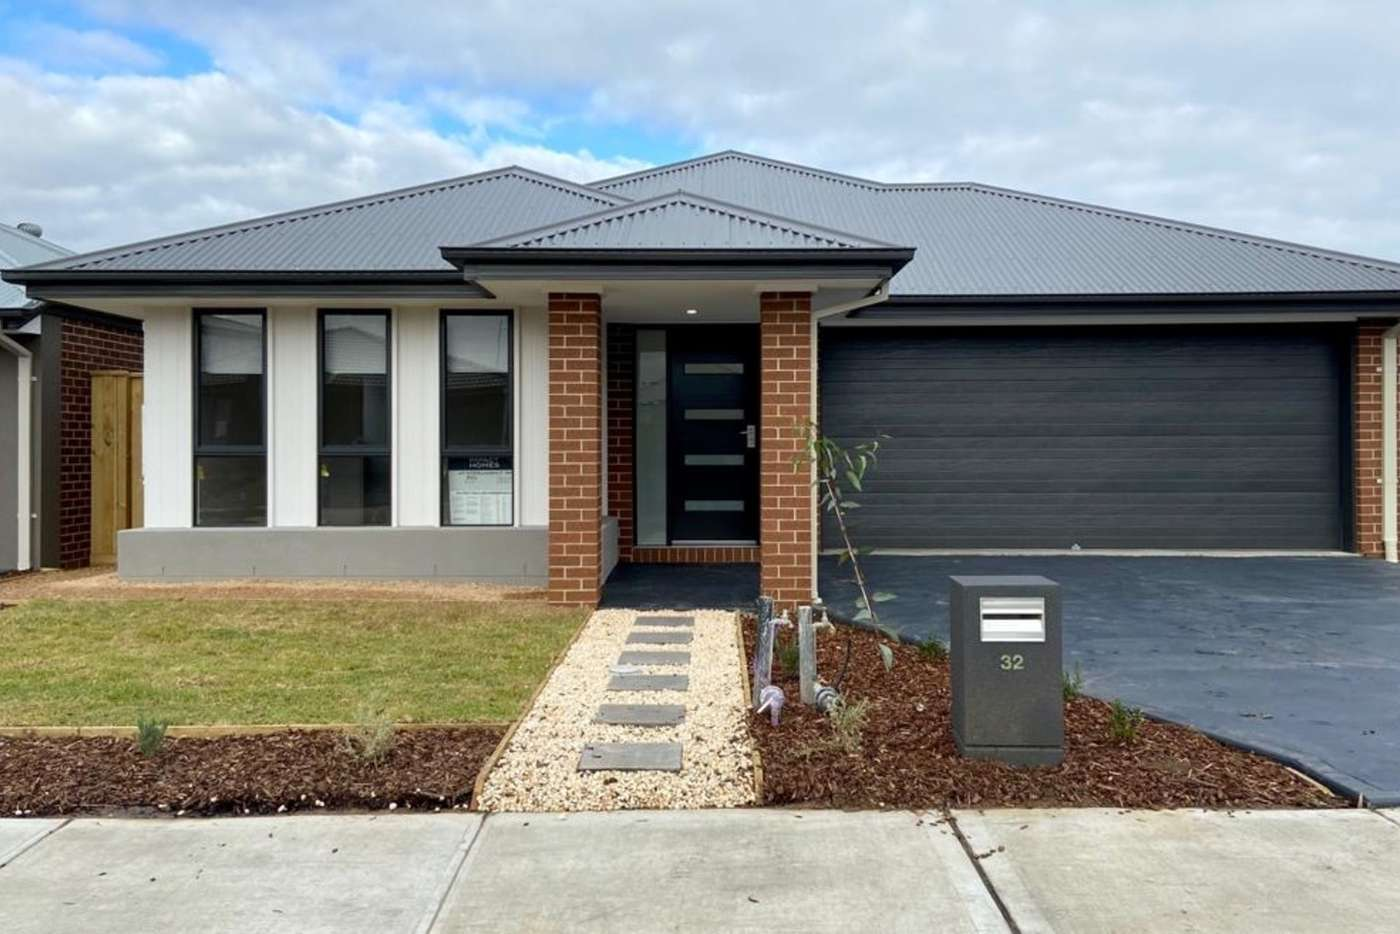 Main view of Homely house listing, 32 Cloudburst Avenue, Wyndham Vale VIC 3024